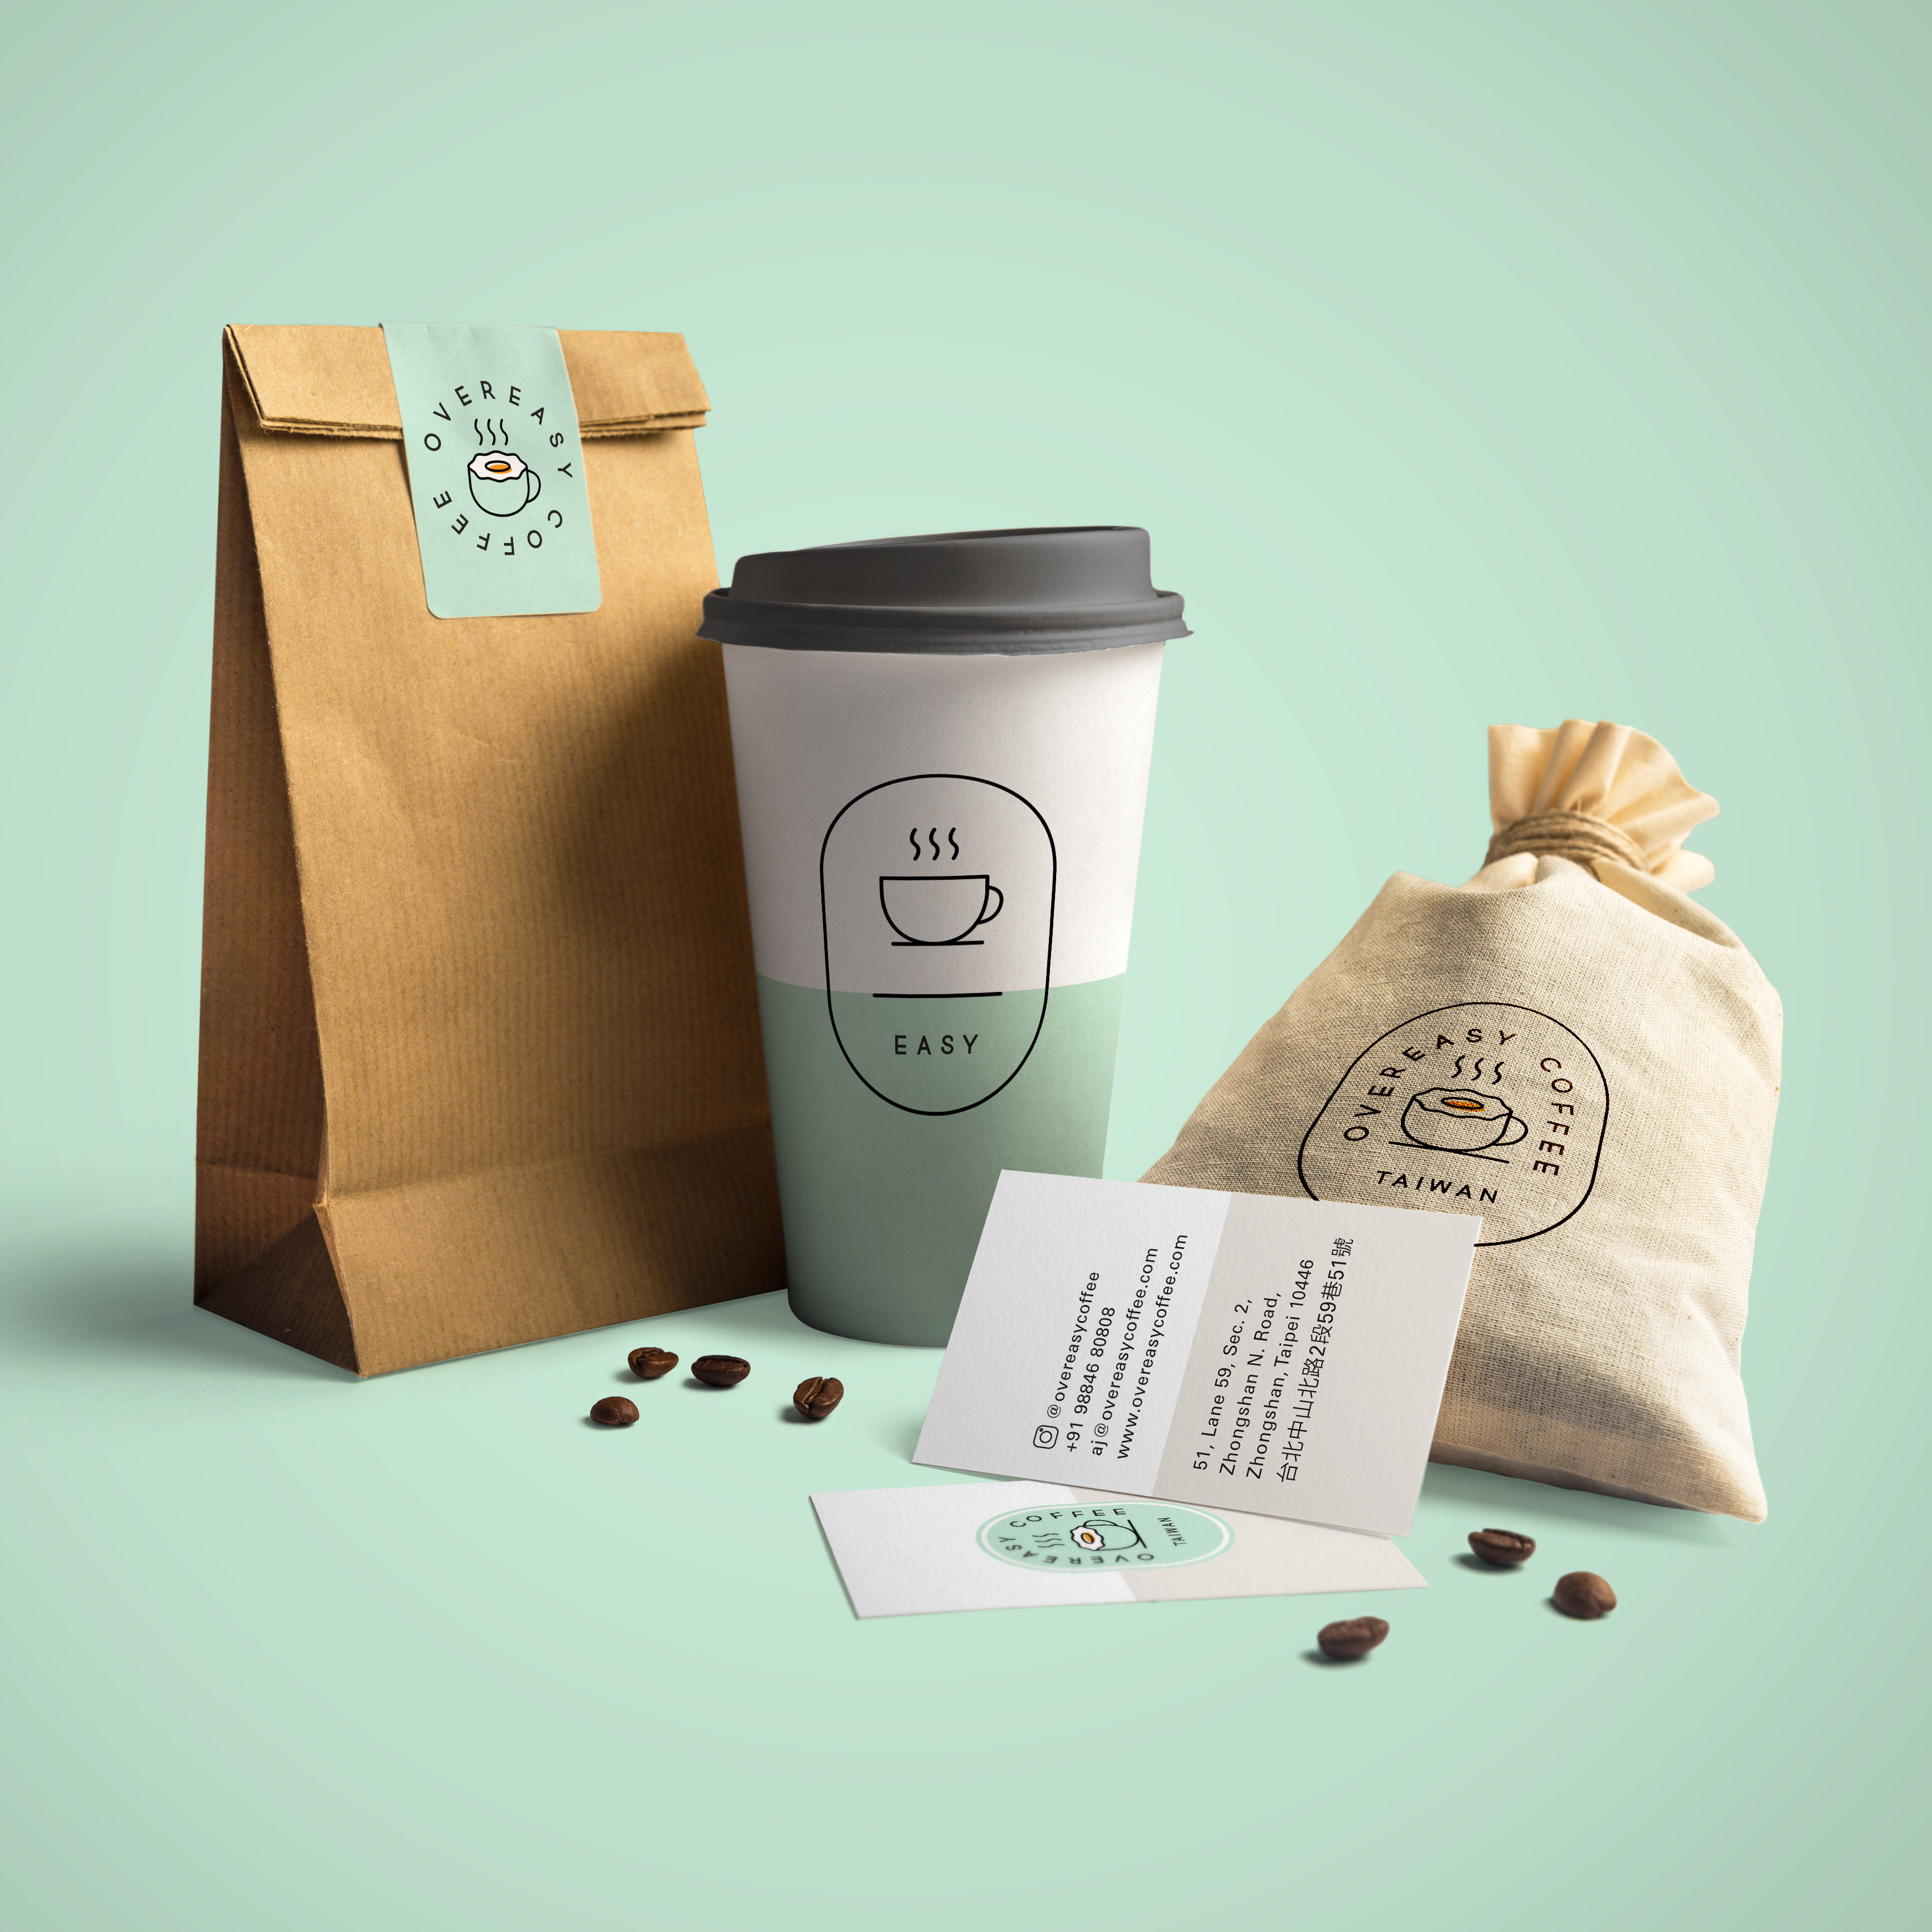 Pink Cheese Designs a Minimalistic Branding for Overeasy Coffee in Taiwan